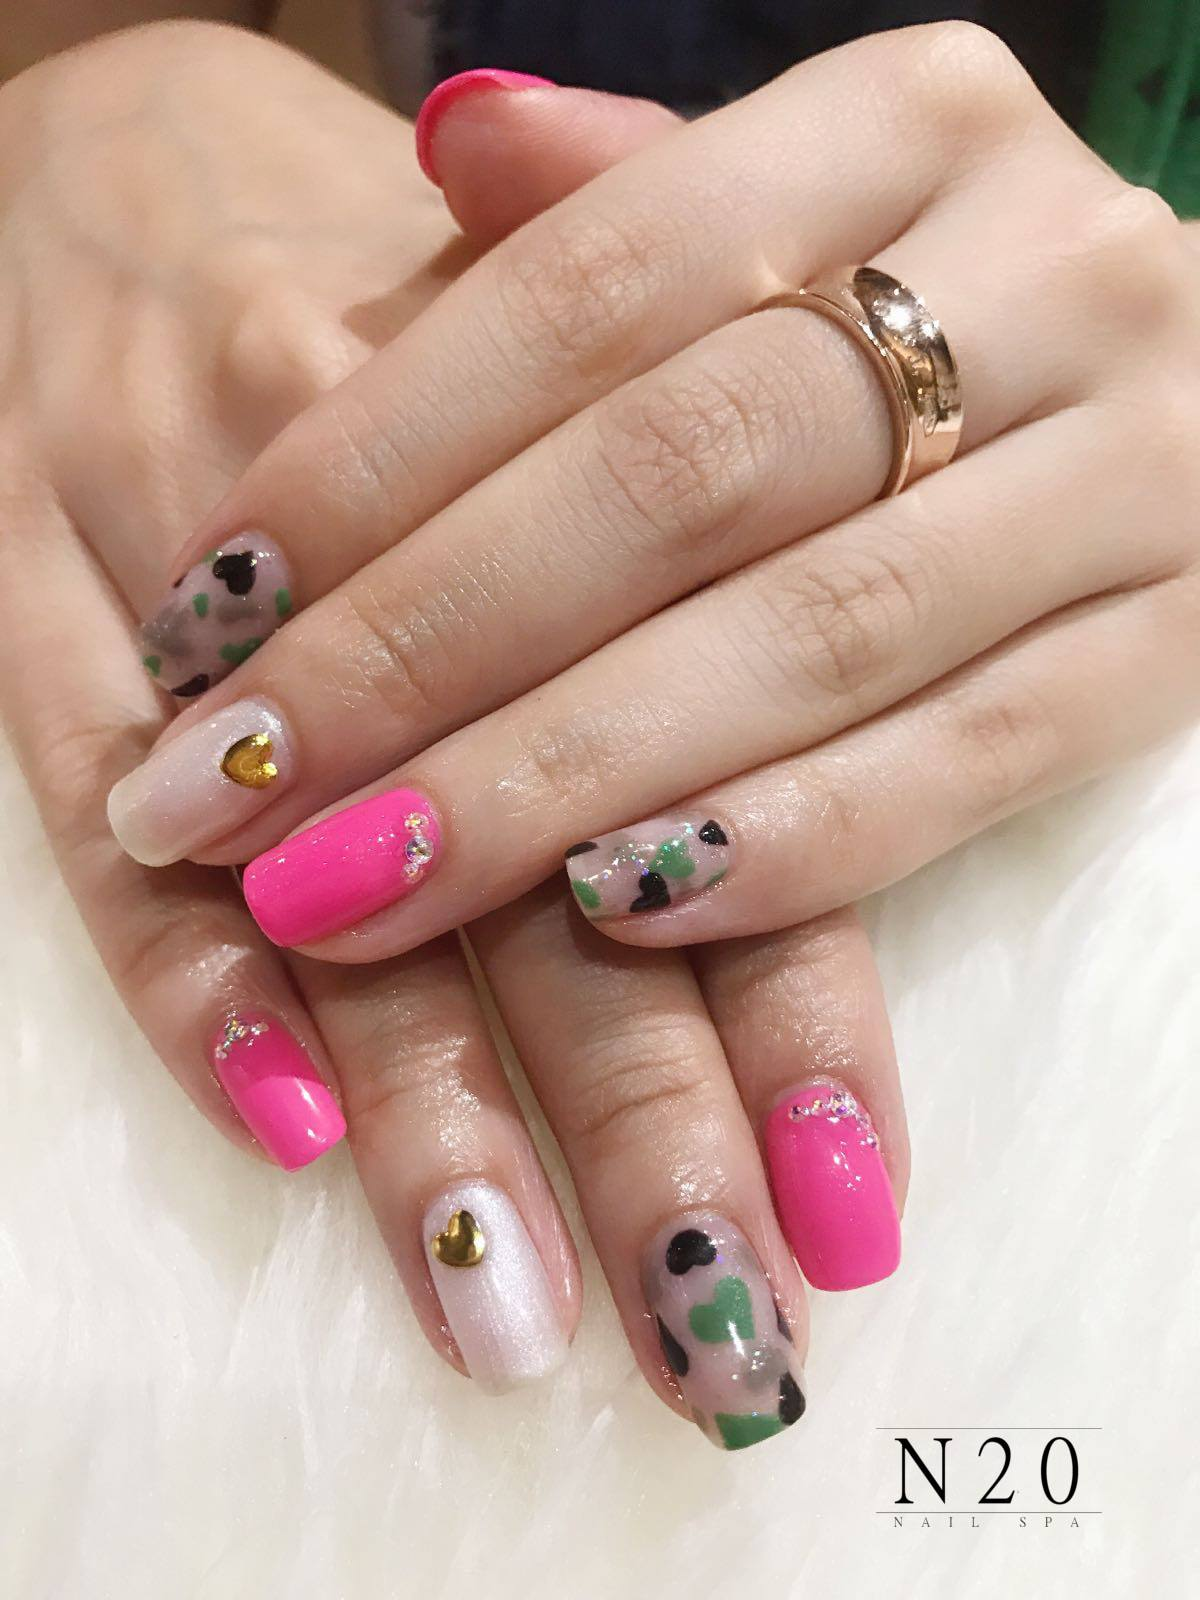 Bright pink natural manicure nail art - N20 Nail Spa